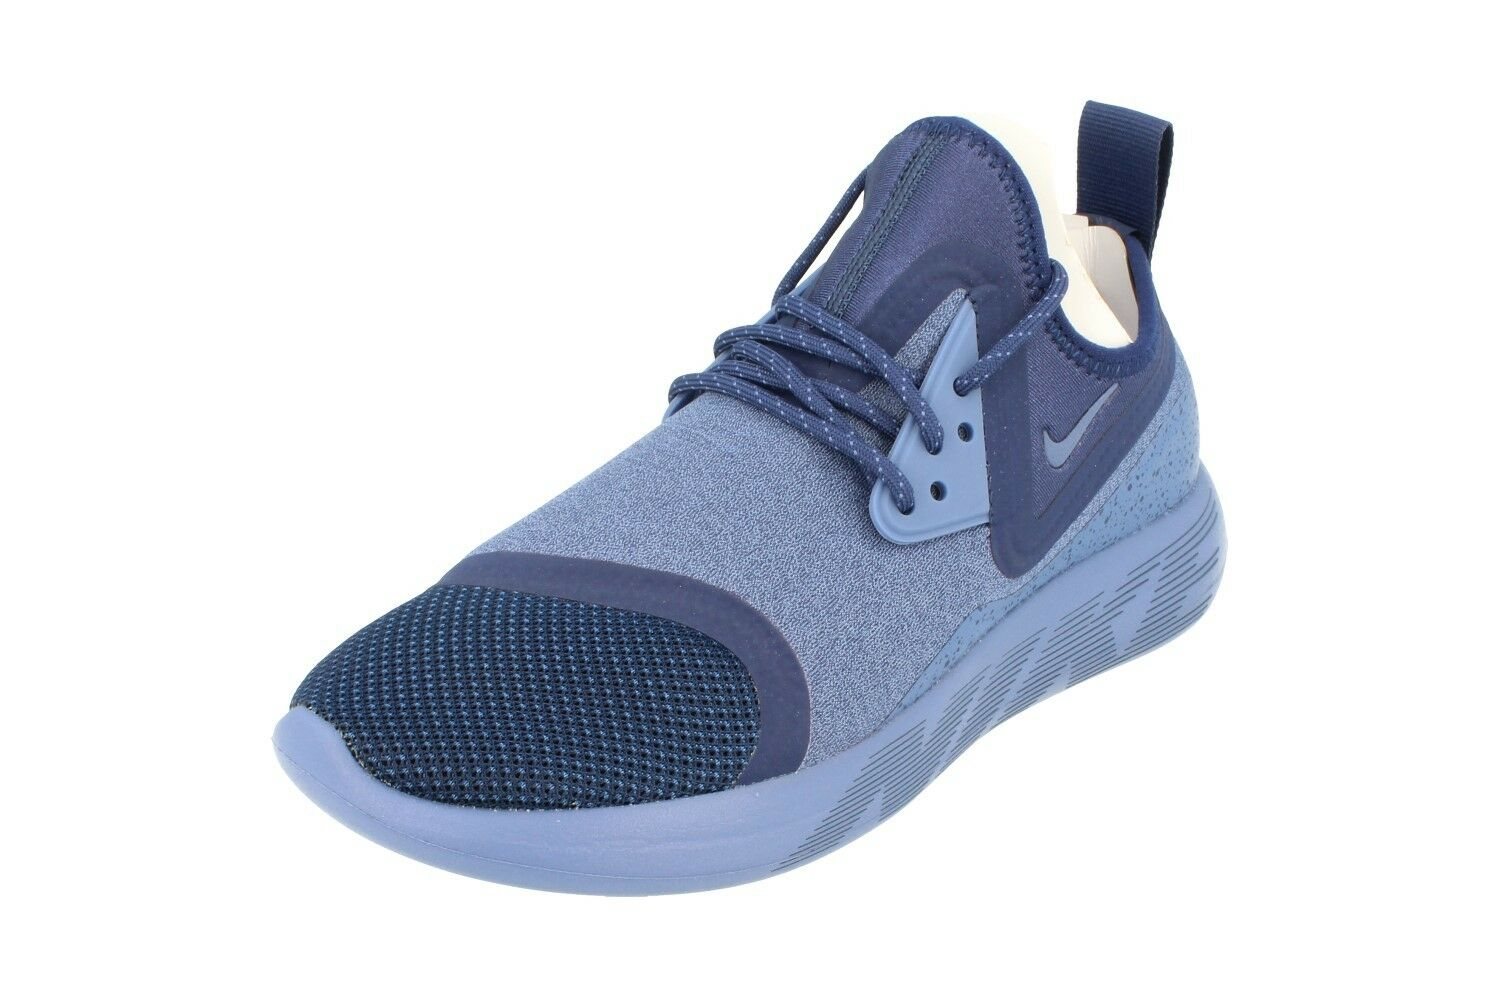 Nike Lunarcharge Essential Mens Running Trainers Trainers Trainers 923619 Sneakers Shoes 447 8d4bf8